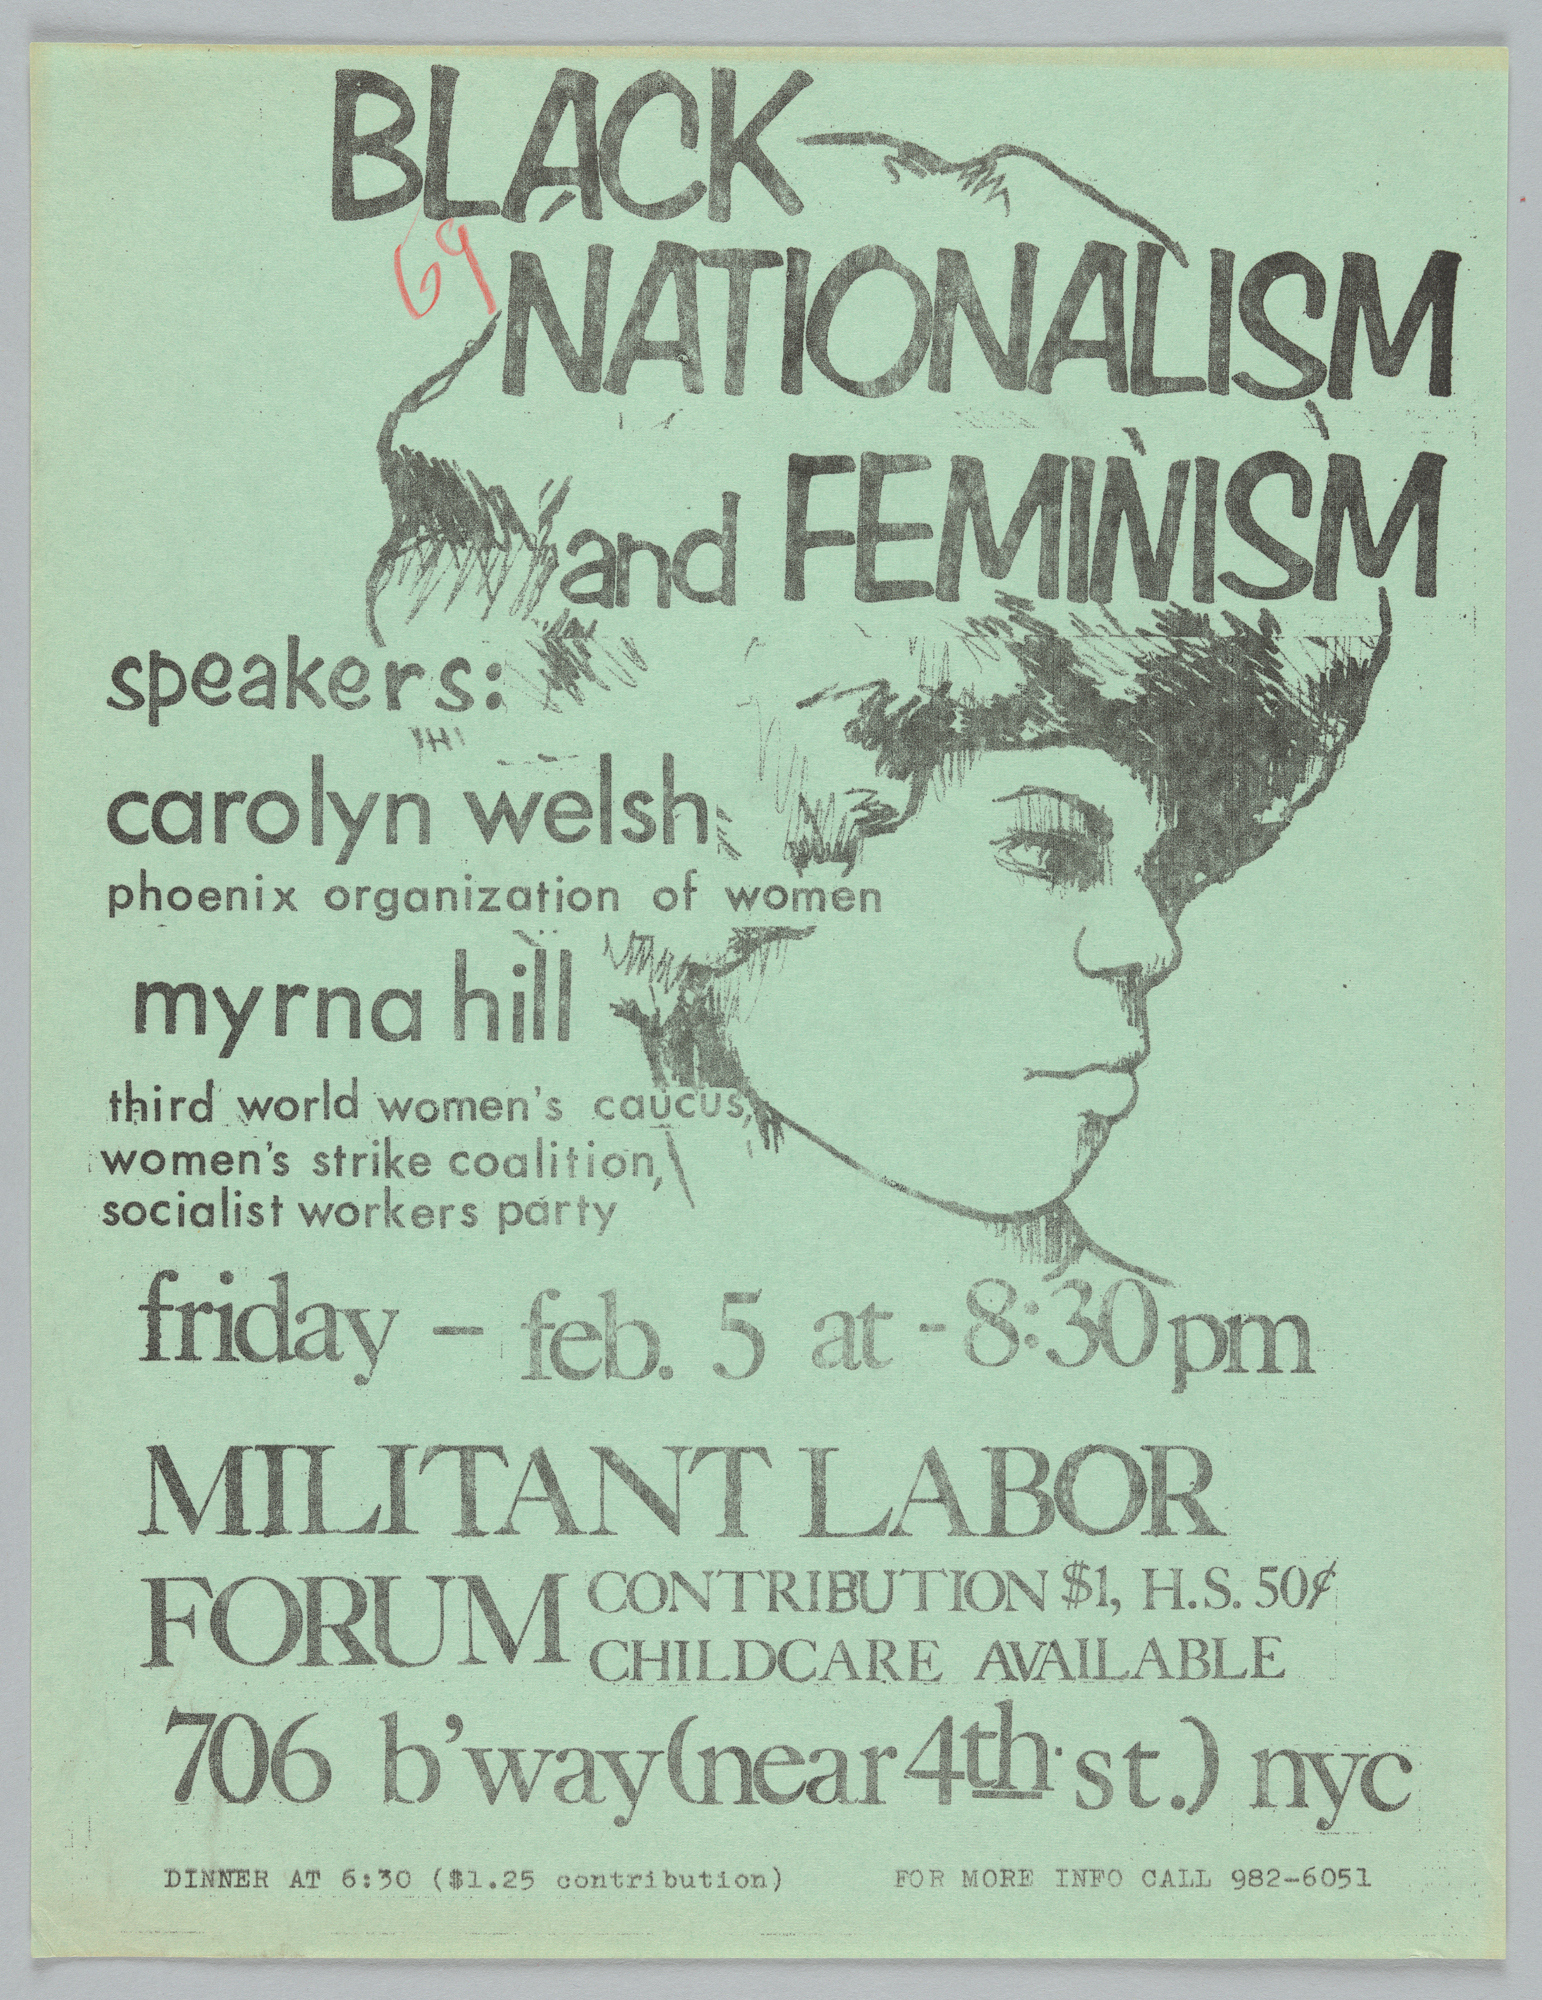 Black Nationalism and Feminism Poster